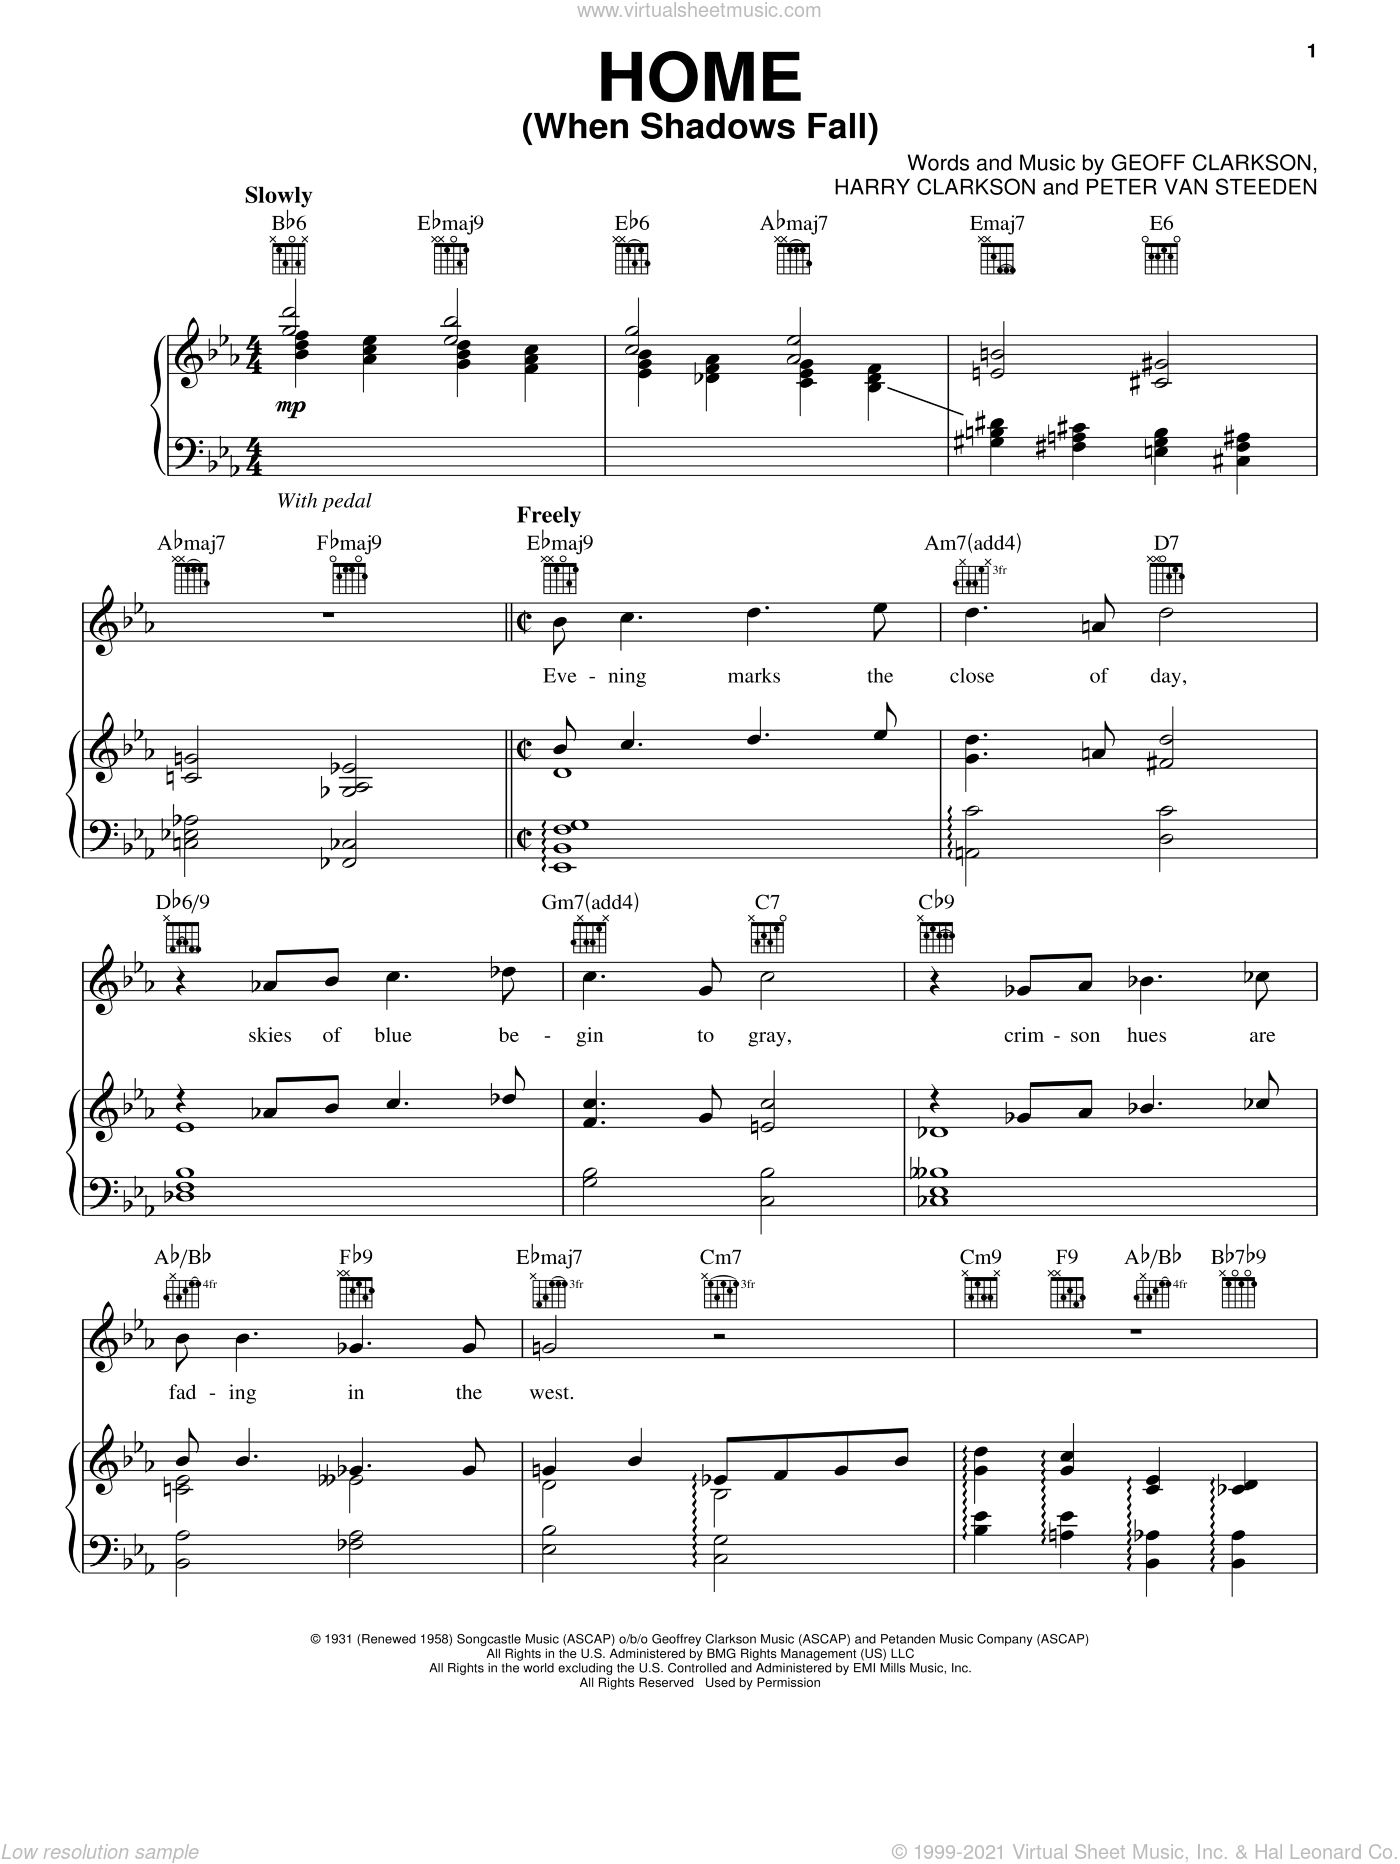 Home (When Shadows Fall) sheet music for voice, piano or guitar by Harry Clarkson